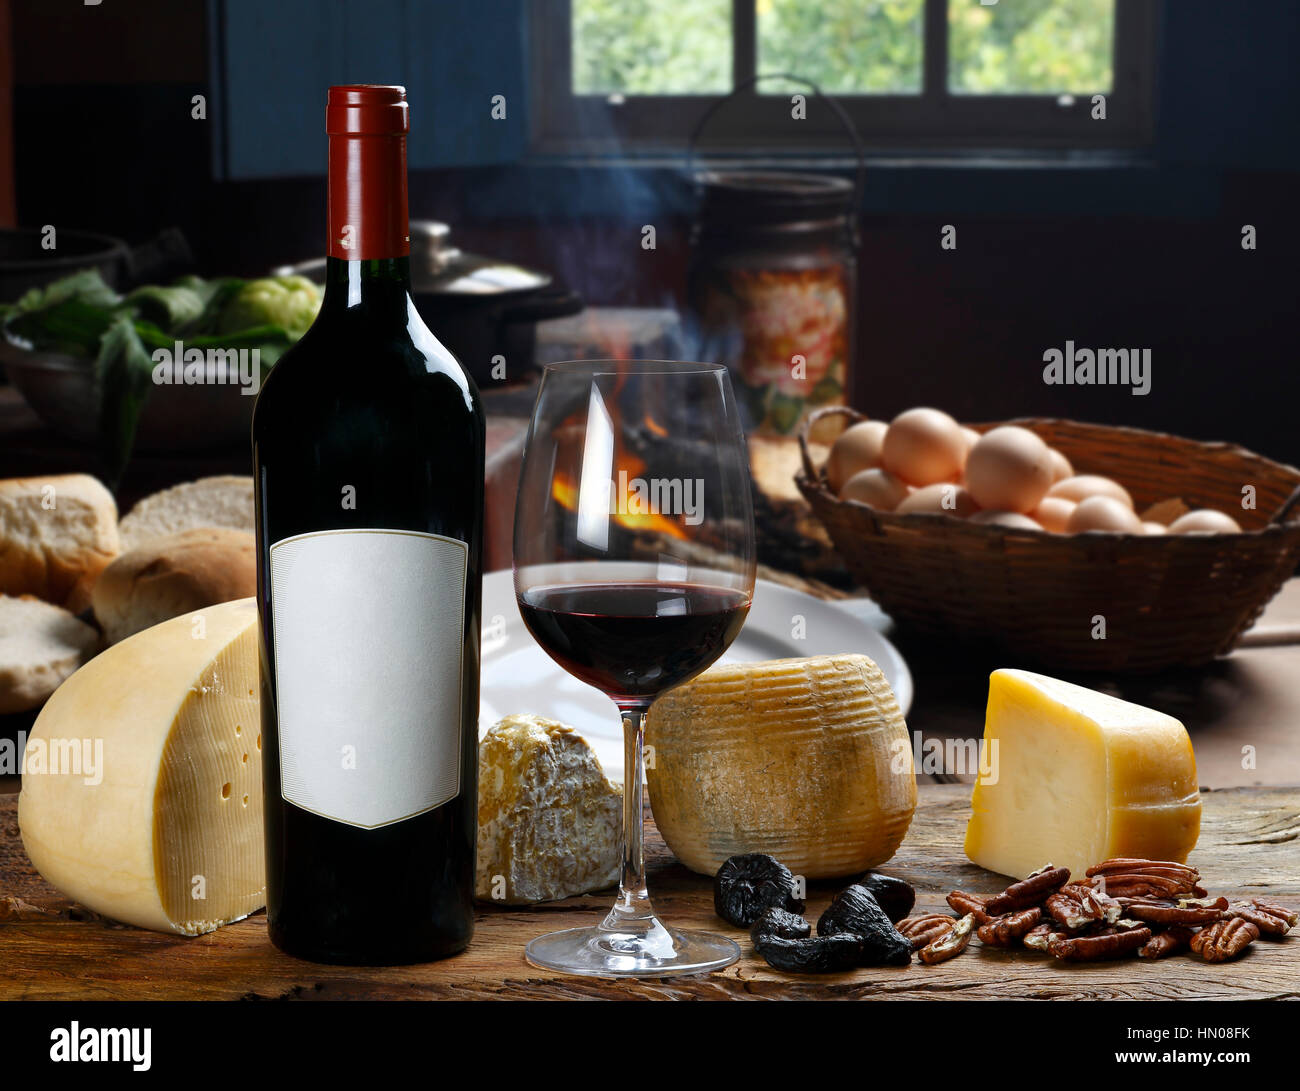 cheese and wine - Stock Image